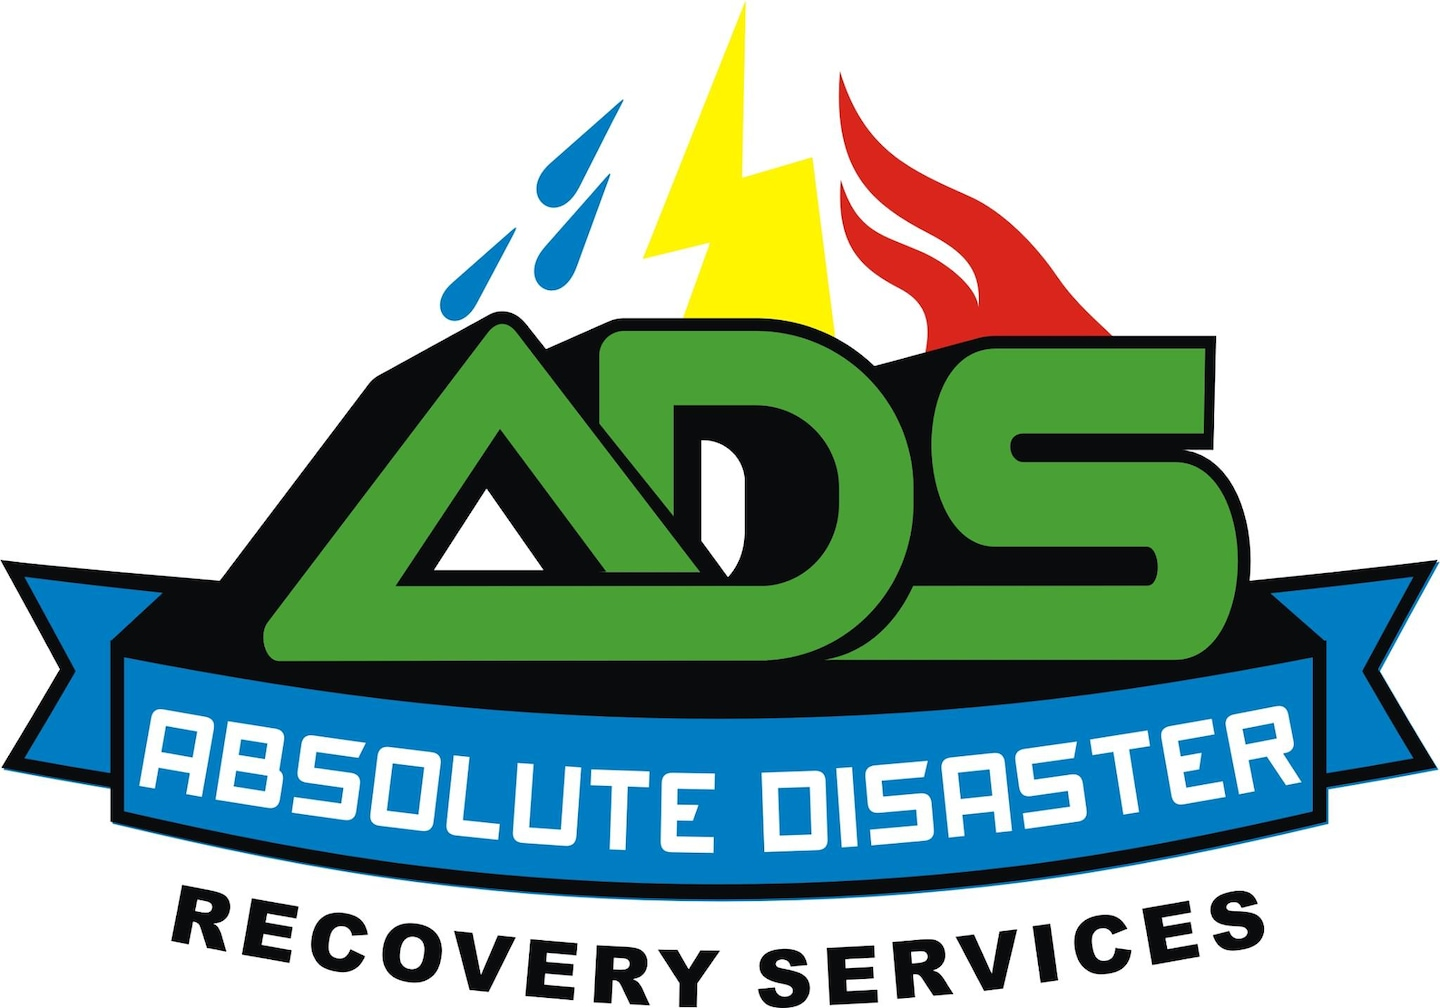 Absolute Disaster Services